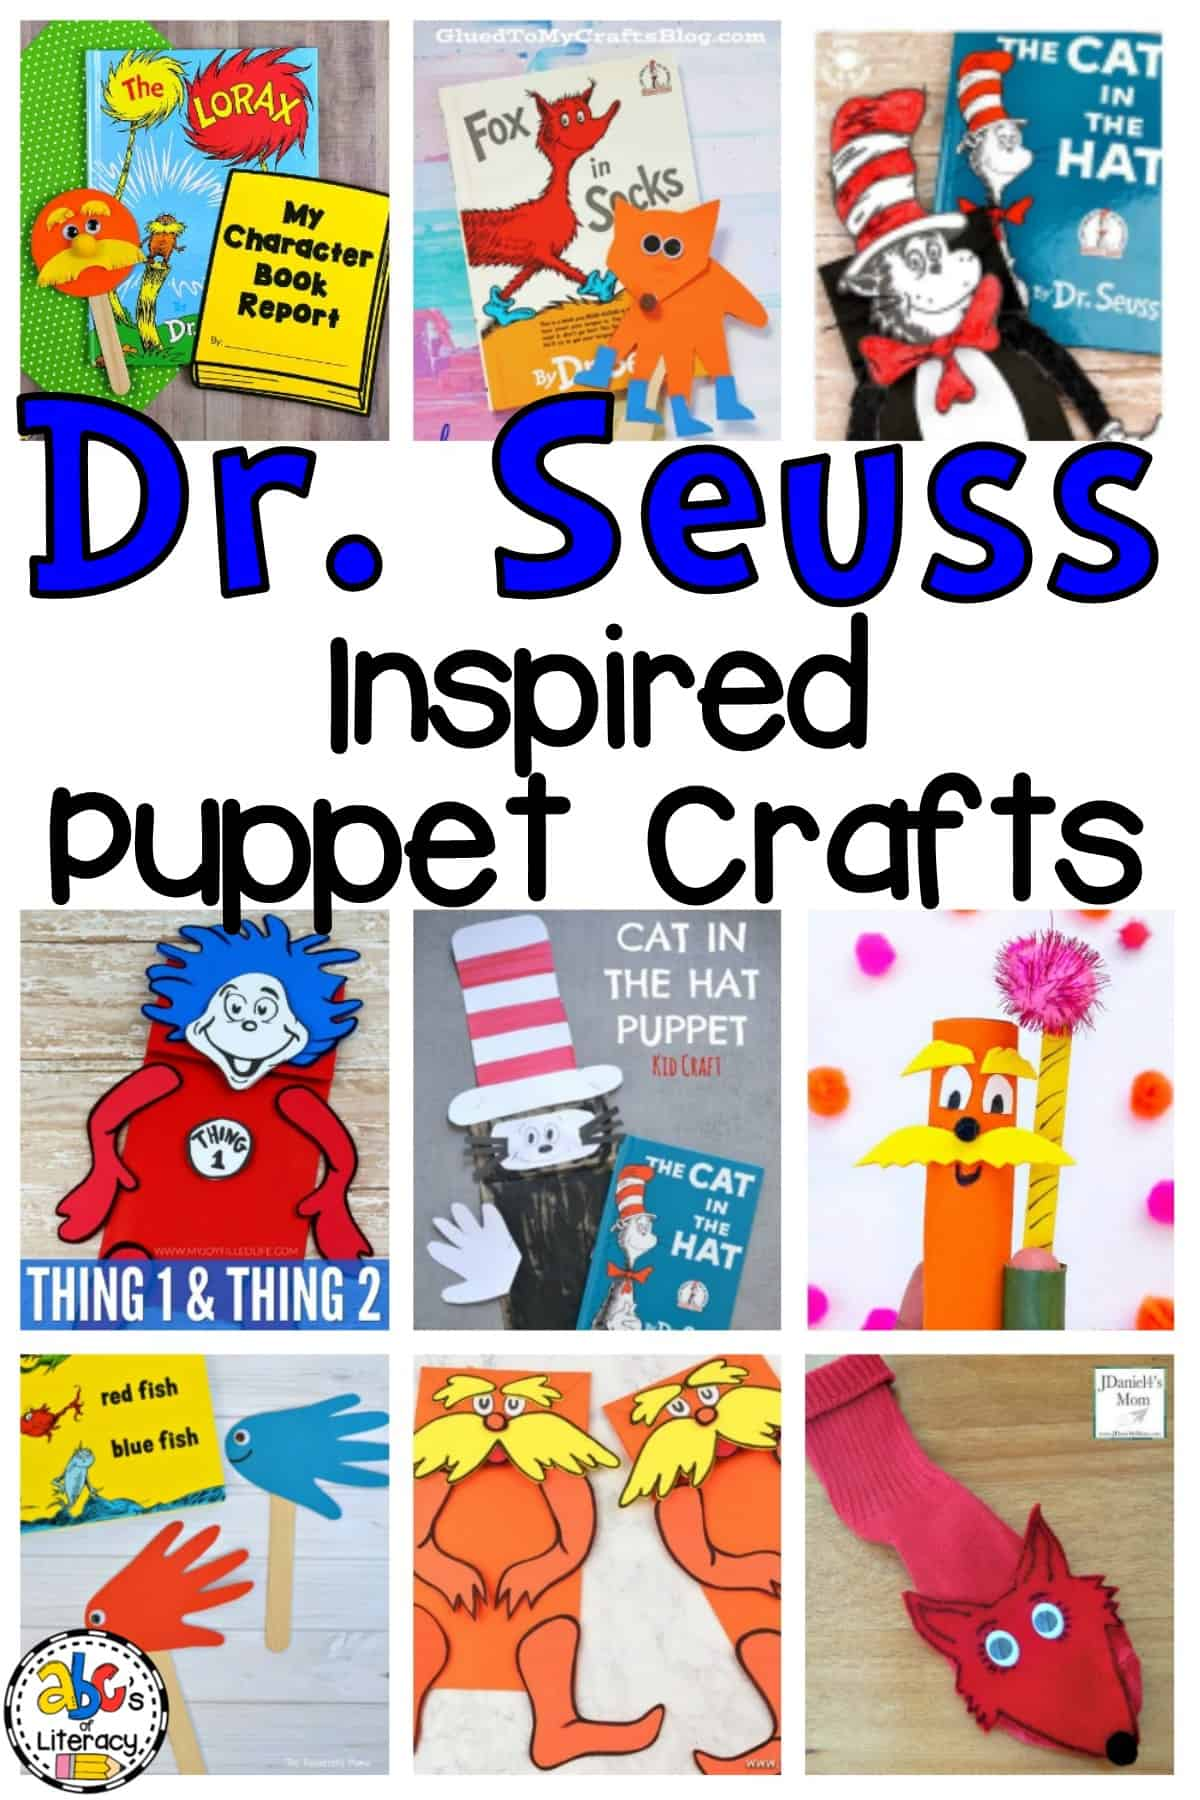 Dr. Seuss Inspired Puppet Crafts, Dr. Seuss, Dr. Seuss Crafts, Puppet Crafts, Reading Month Crafts